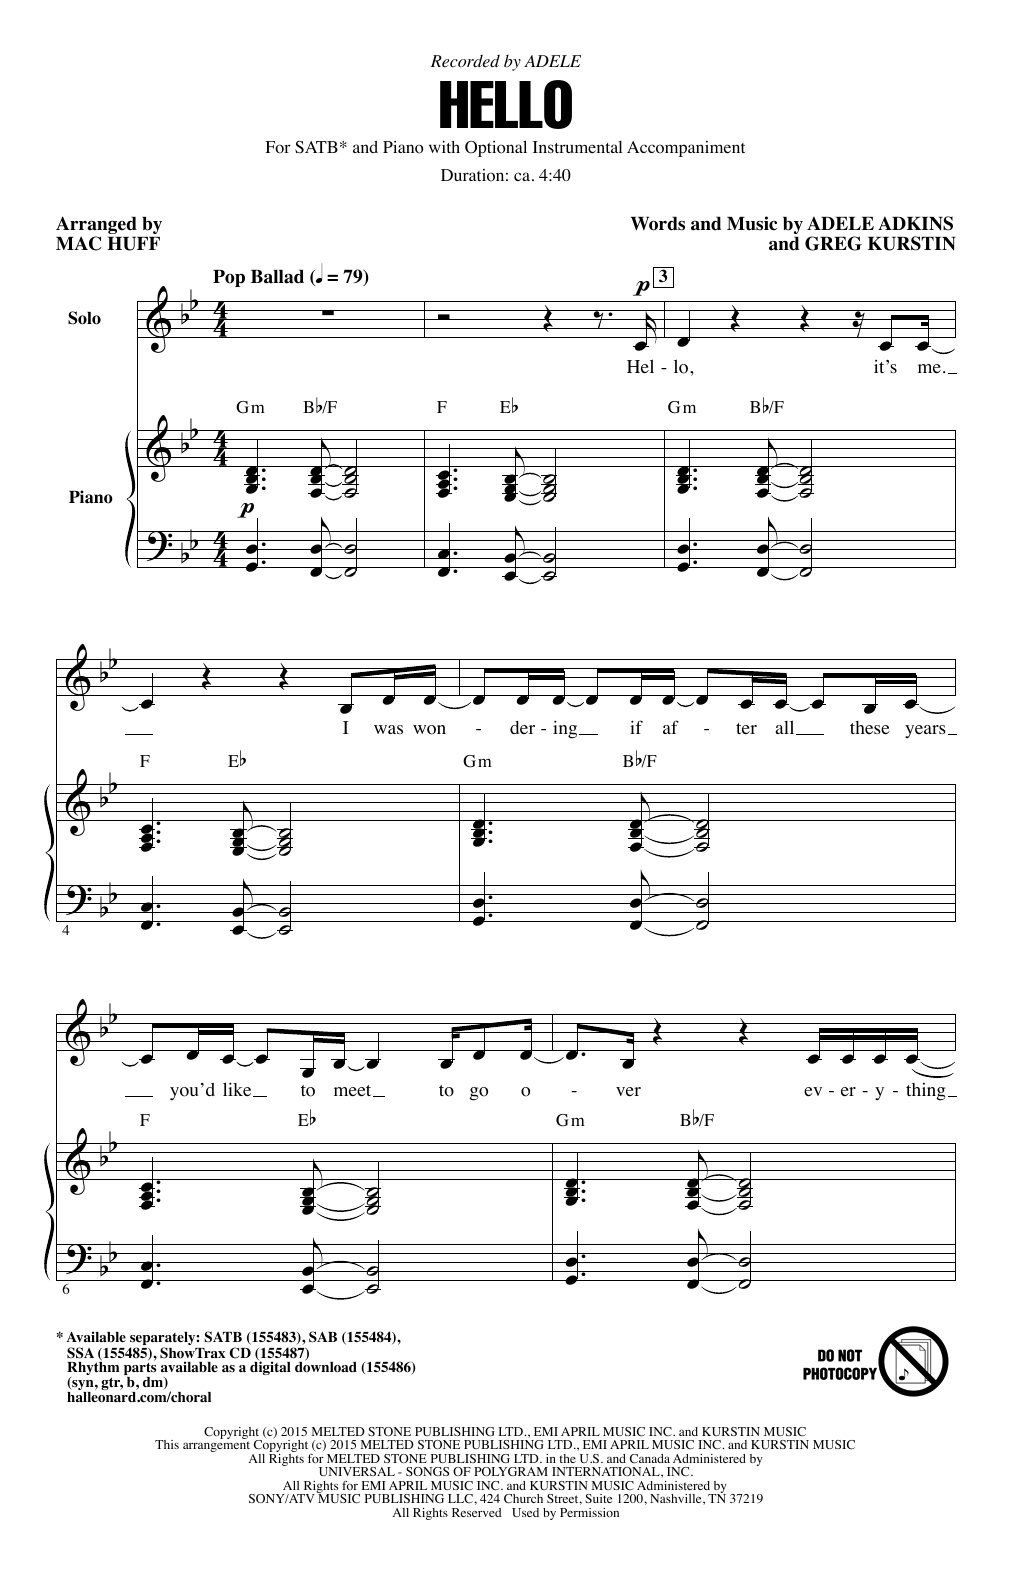 Download Mac Huff 'Hello' Digital Sheet Music Notes & Chords and start playing in minutes